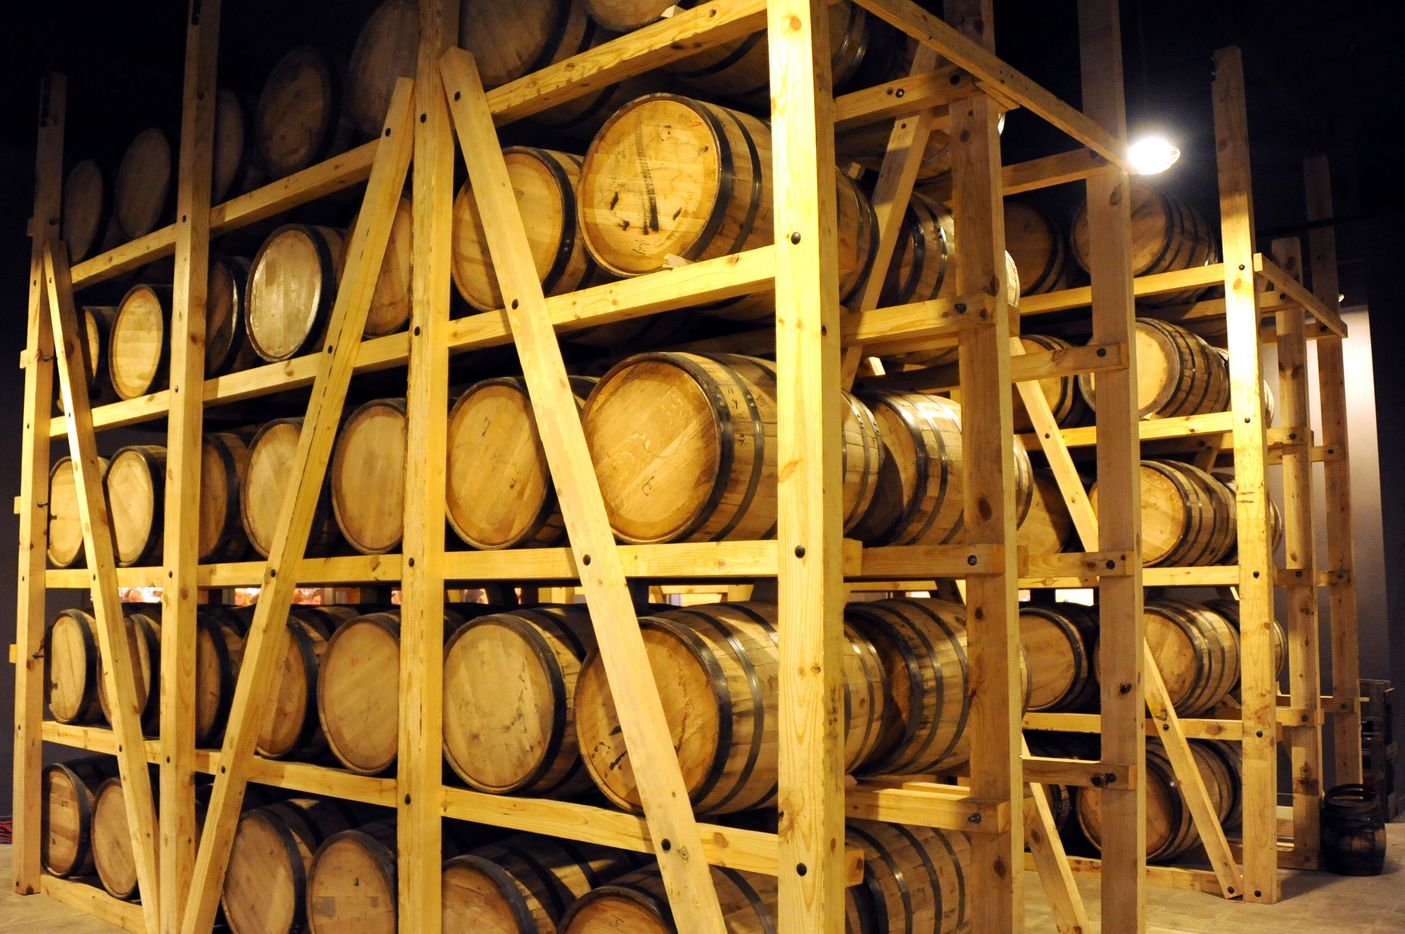 Barrels of whiskey bourbon and rum line the walls at Witherspoon Distillery in Lewisville, TX on October 24, 2015.